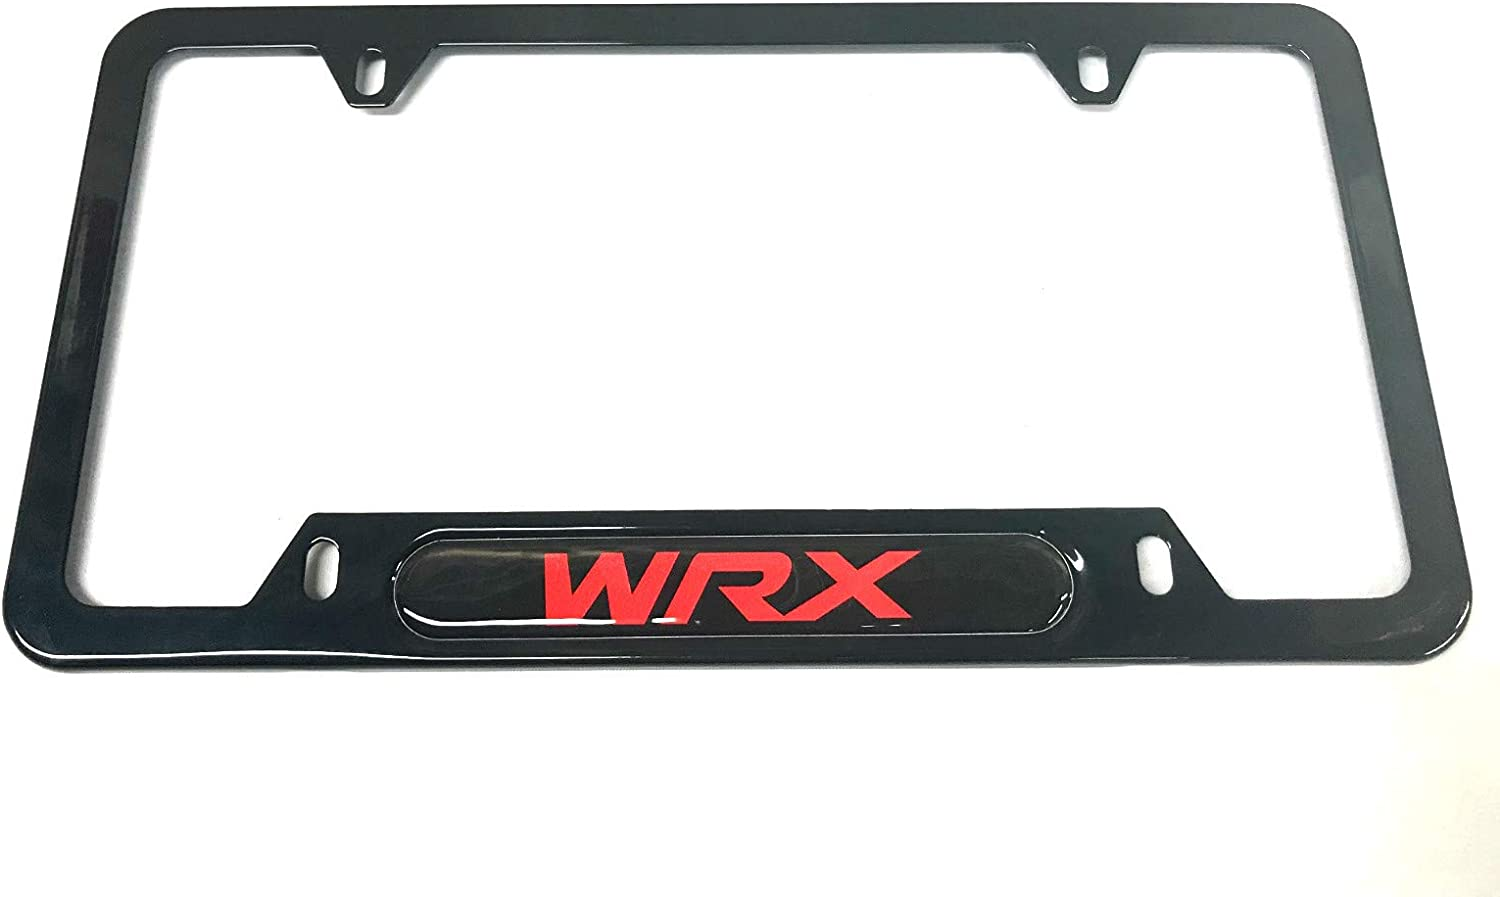 2 Black Auteal Car Stainless Steel Metal WRX License Plate Tag Frame Cover Holders w//Caps Screws for Subaru